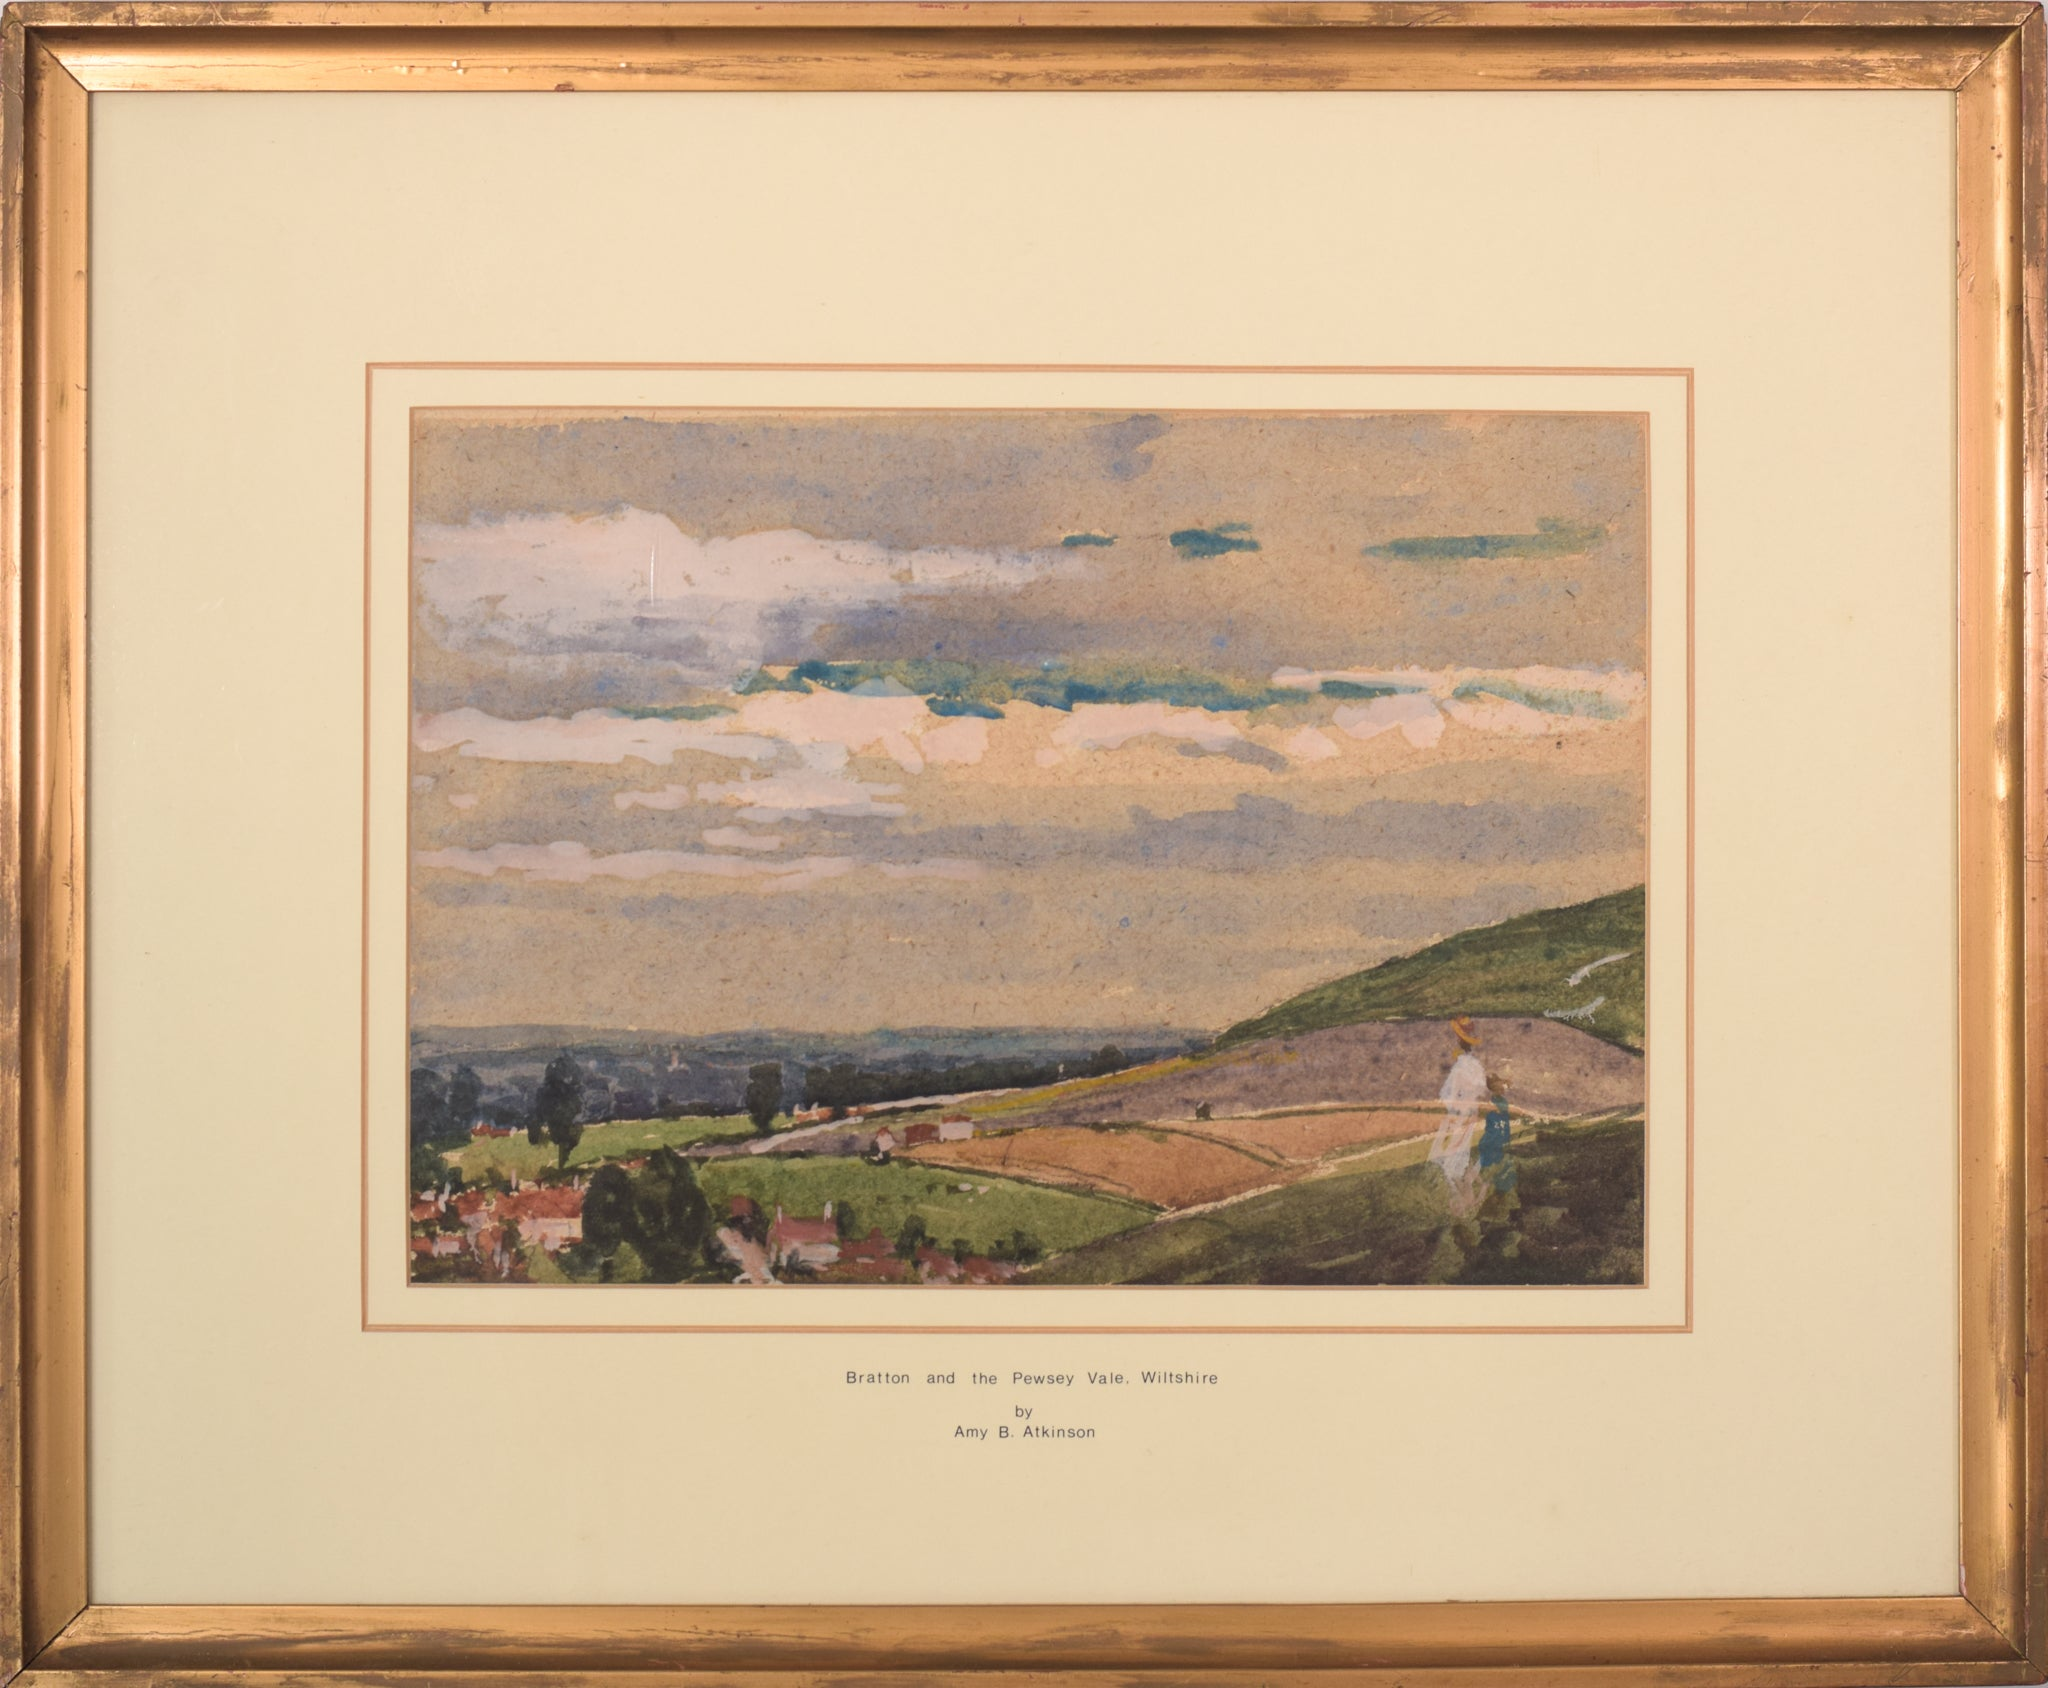 'Bratton and Pewsey Vale, Wiltshire' by Amy Atkinson_Framed